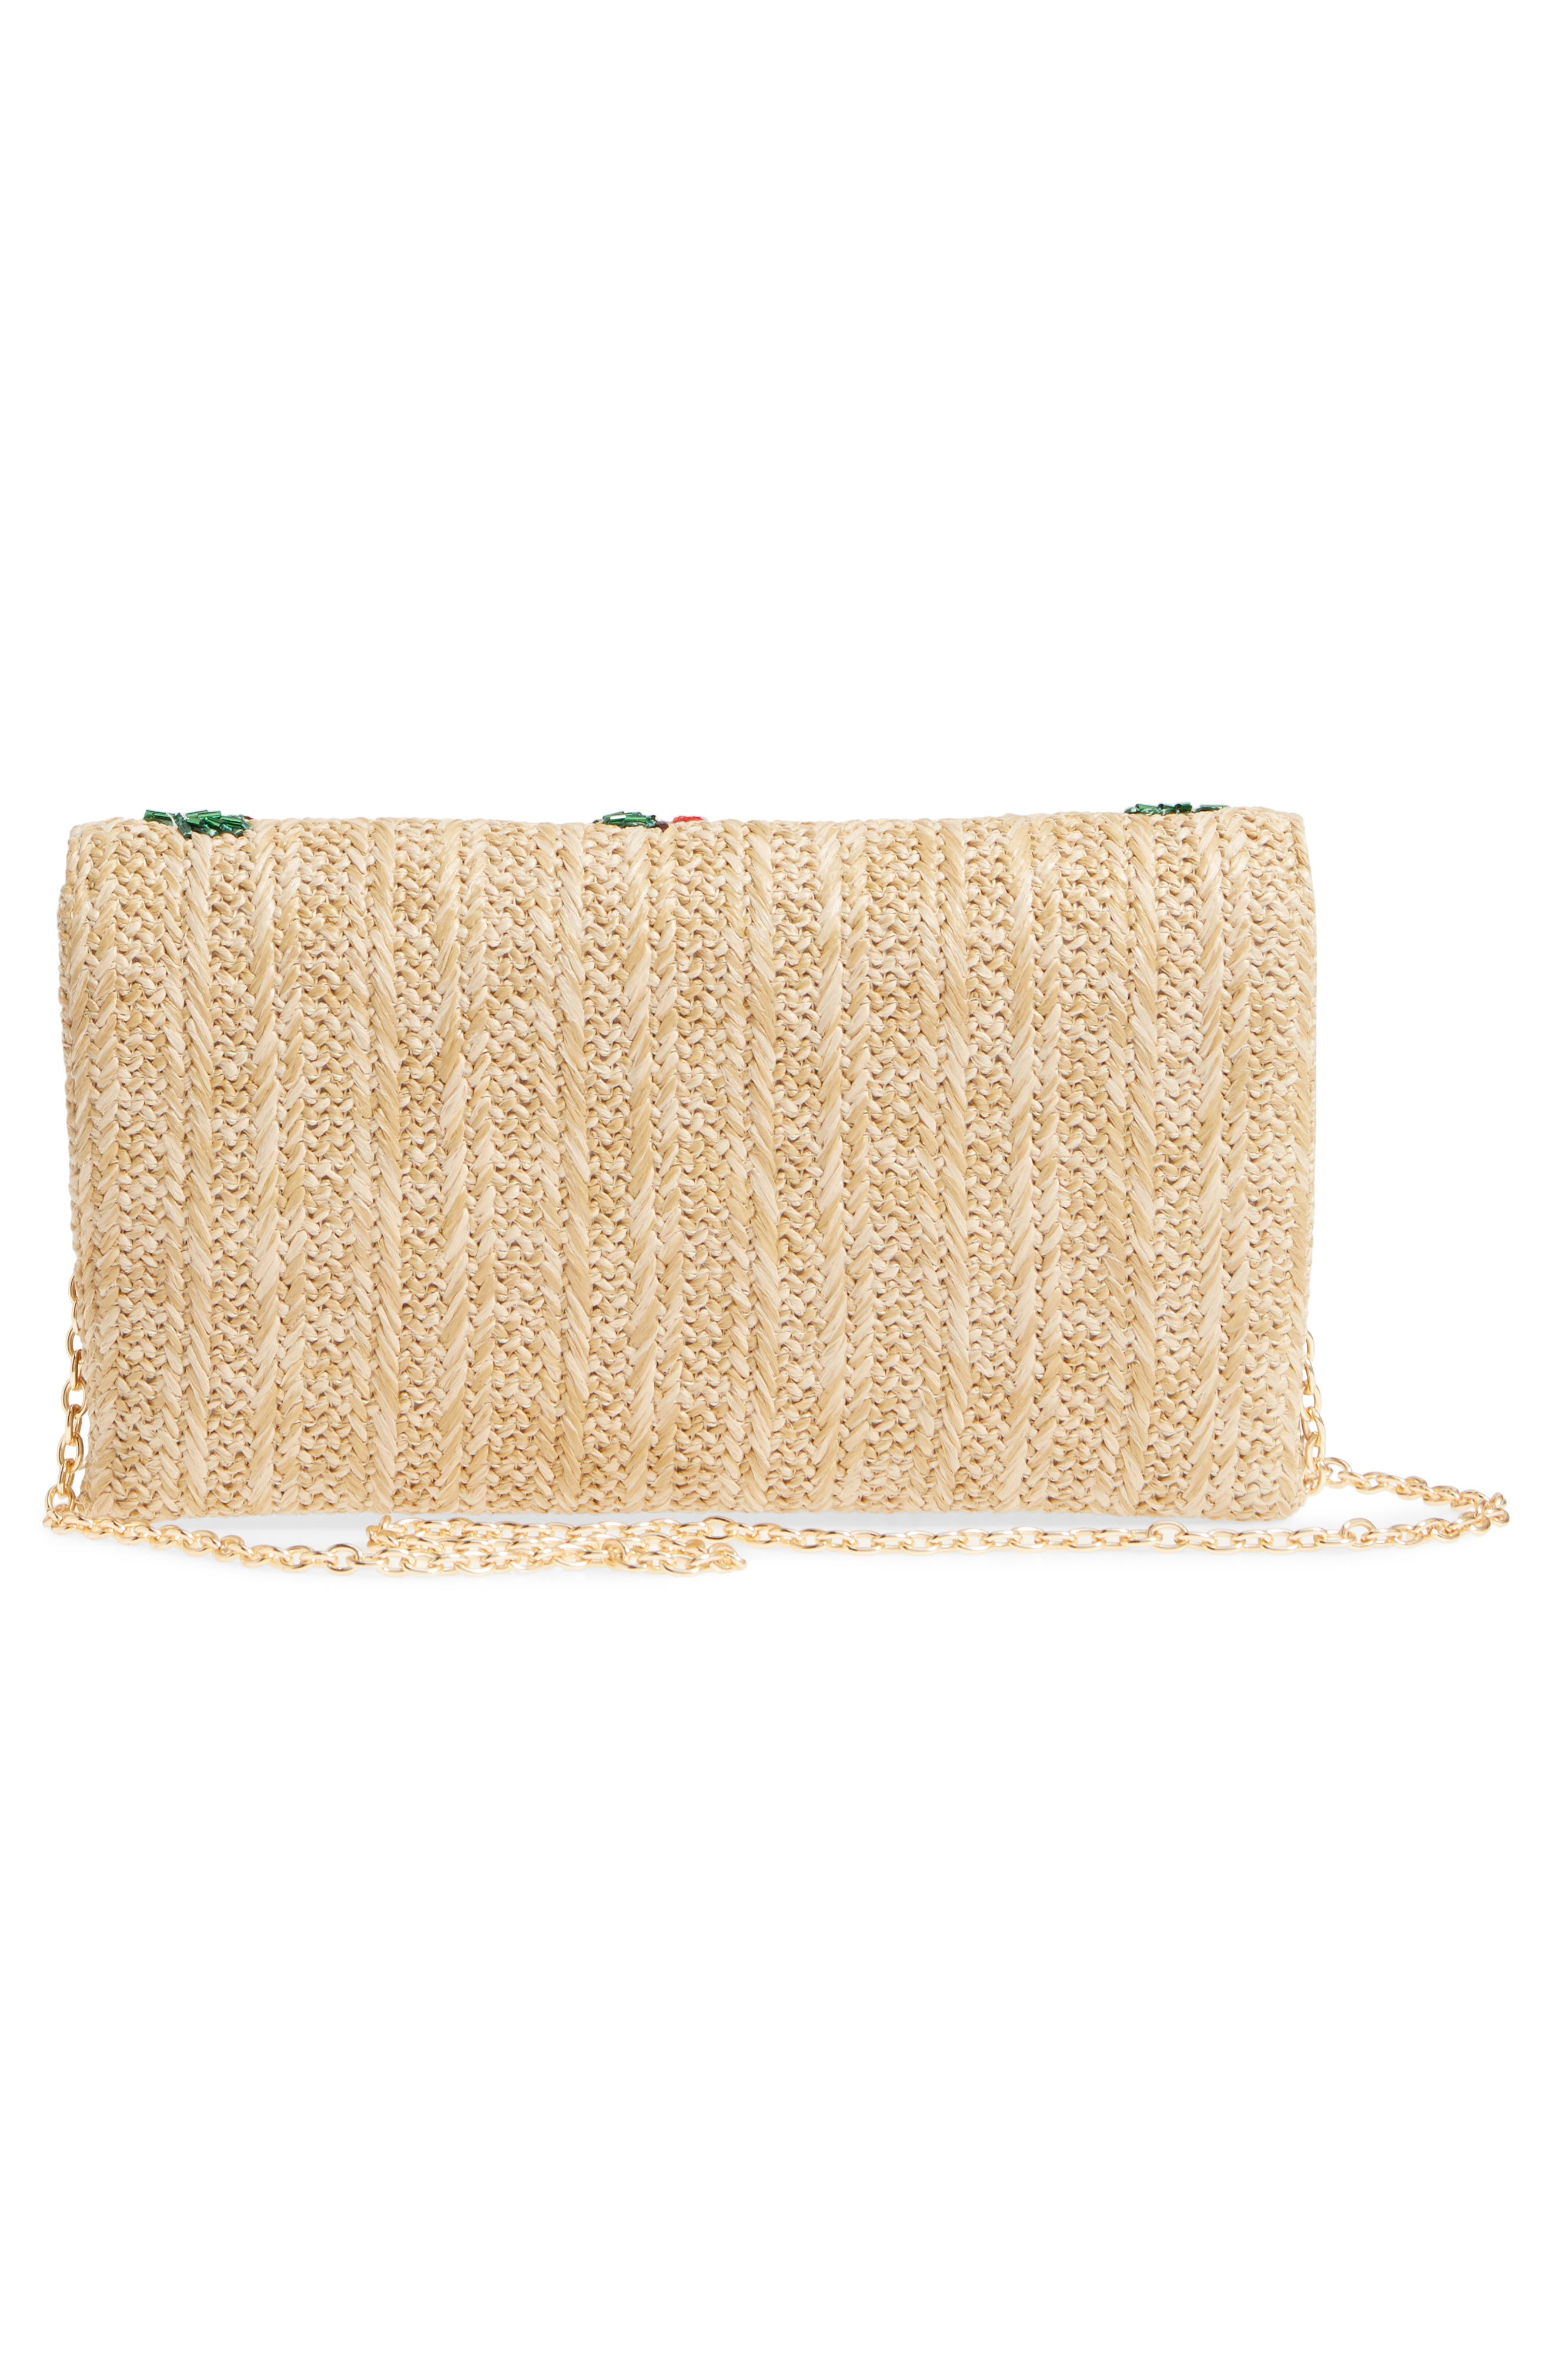 Cherry Embellished Straw Envelope Clutch,                             Alternate thumbnail 3, color,                             235